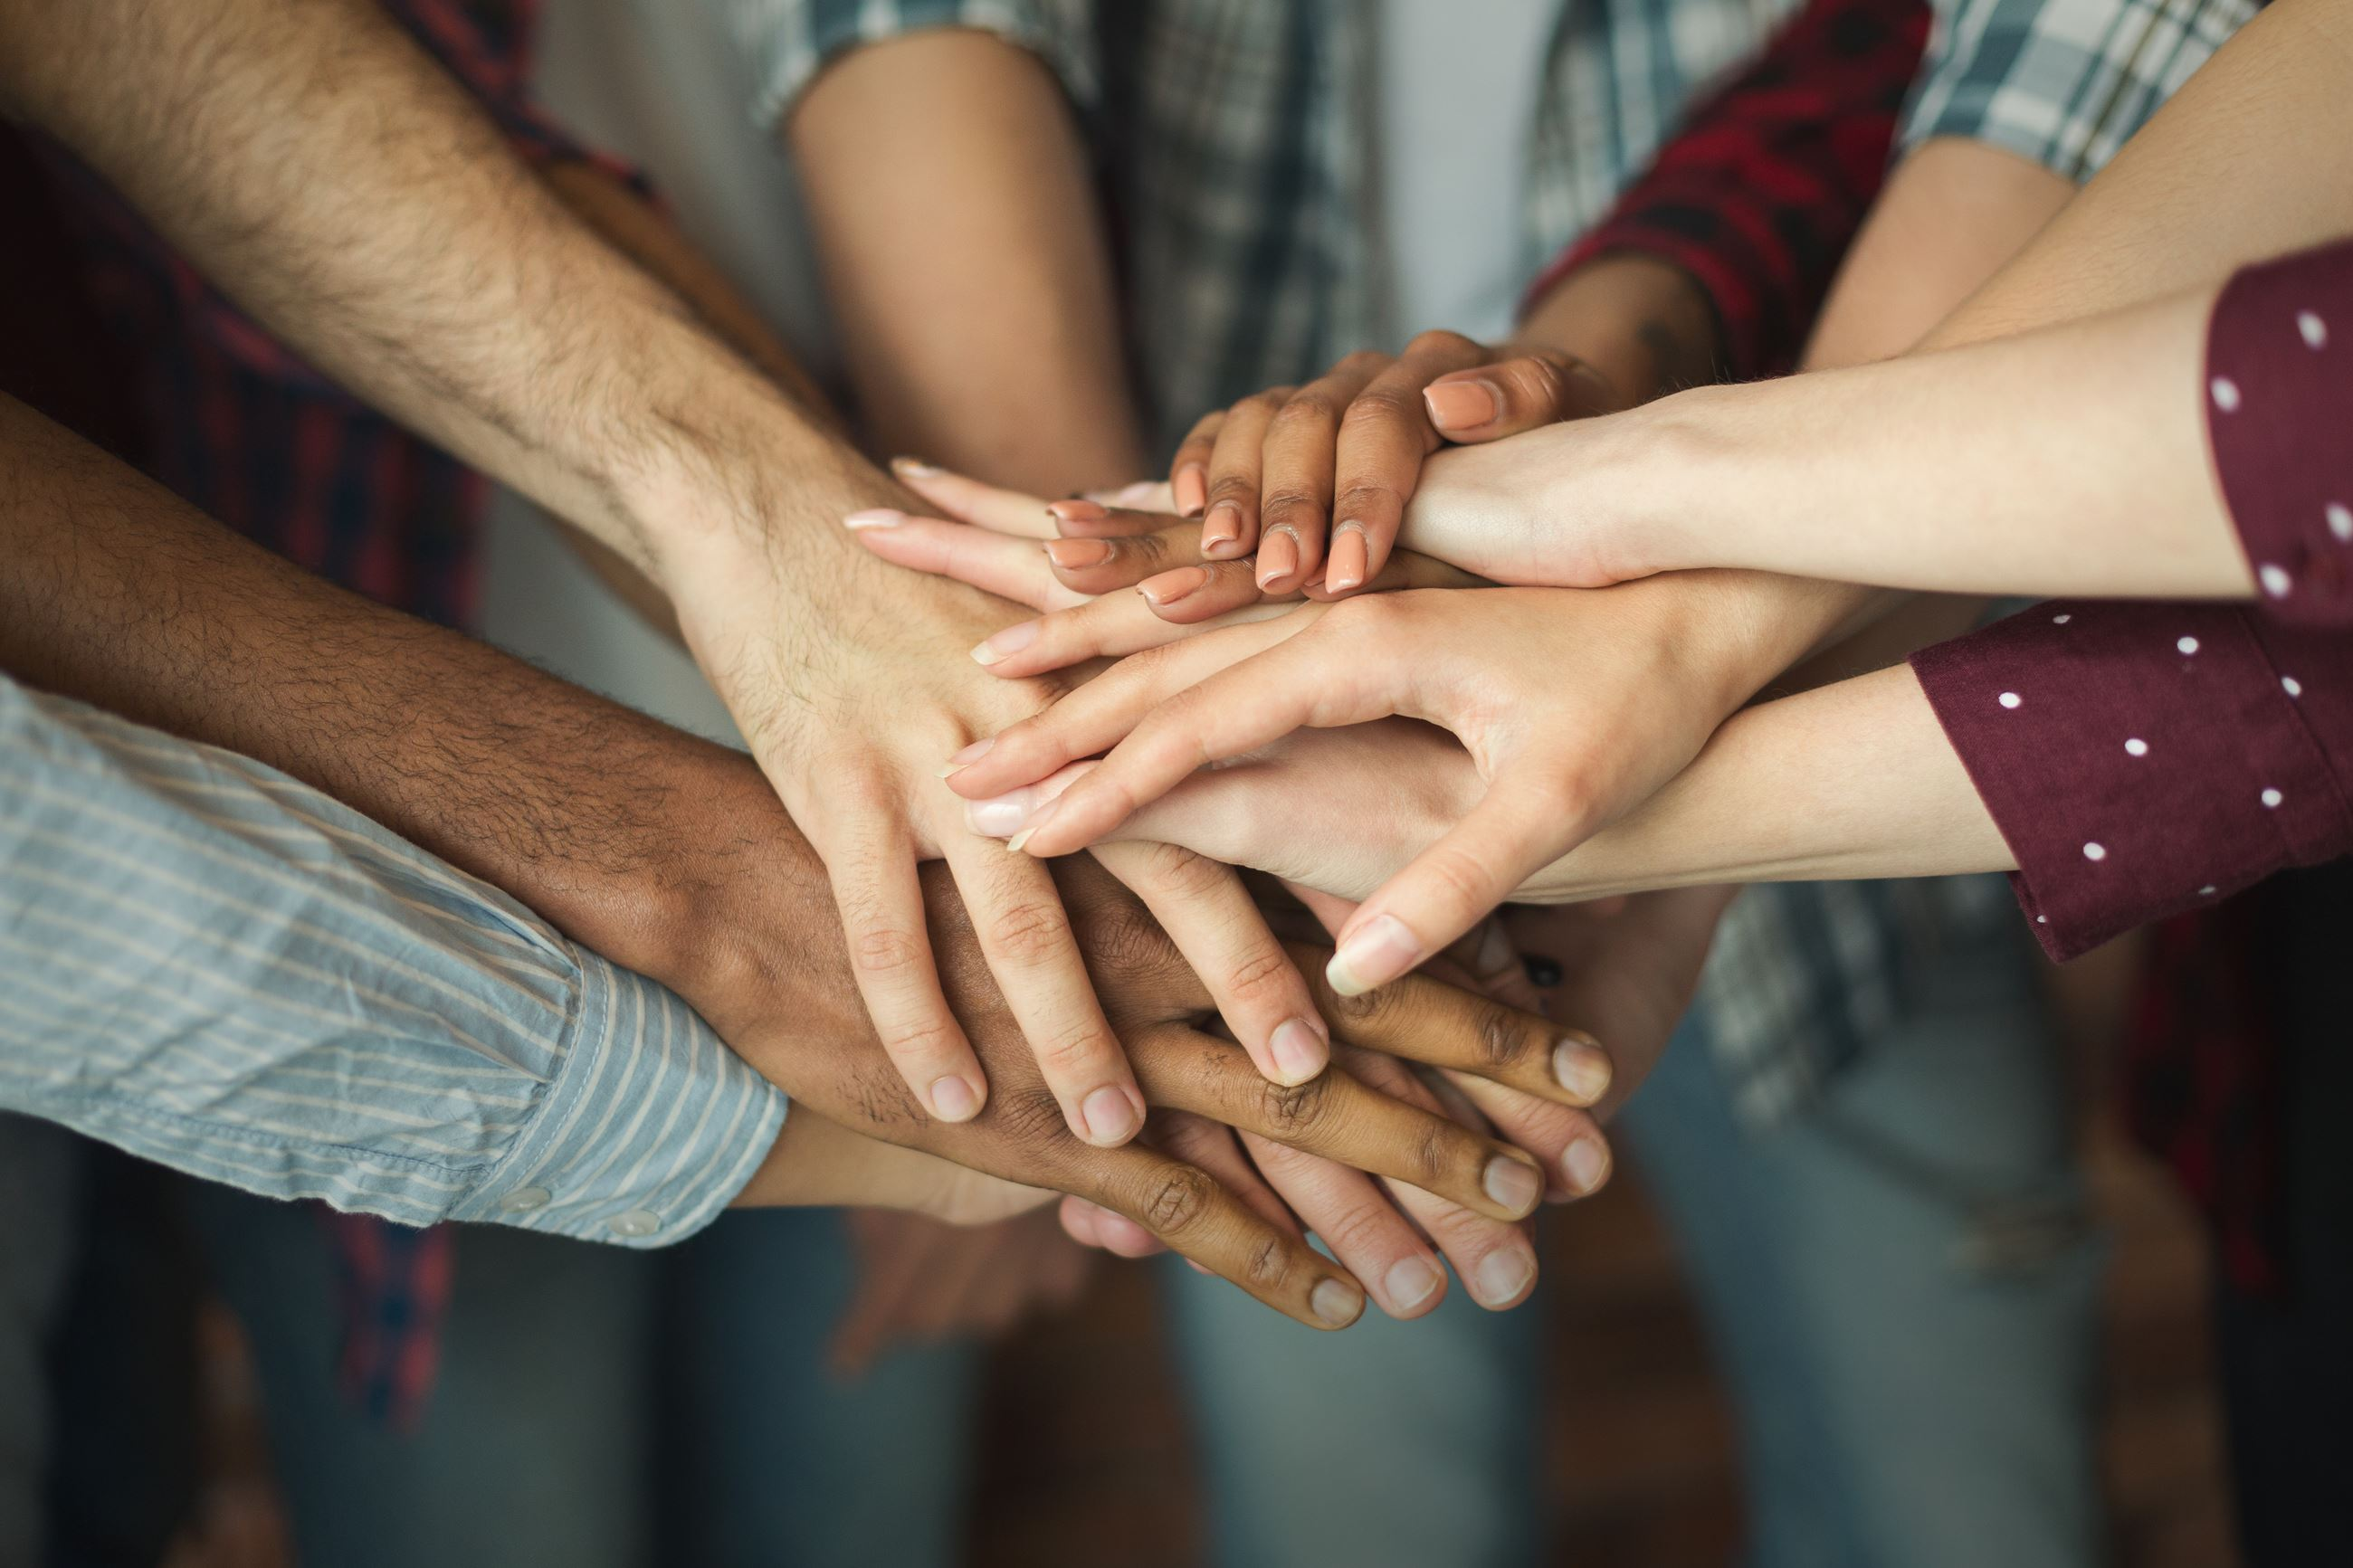 Close-up photo of a huddle of people piling hands on top of one another.